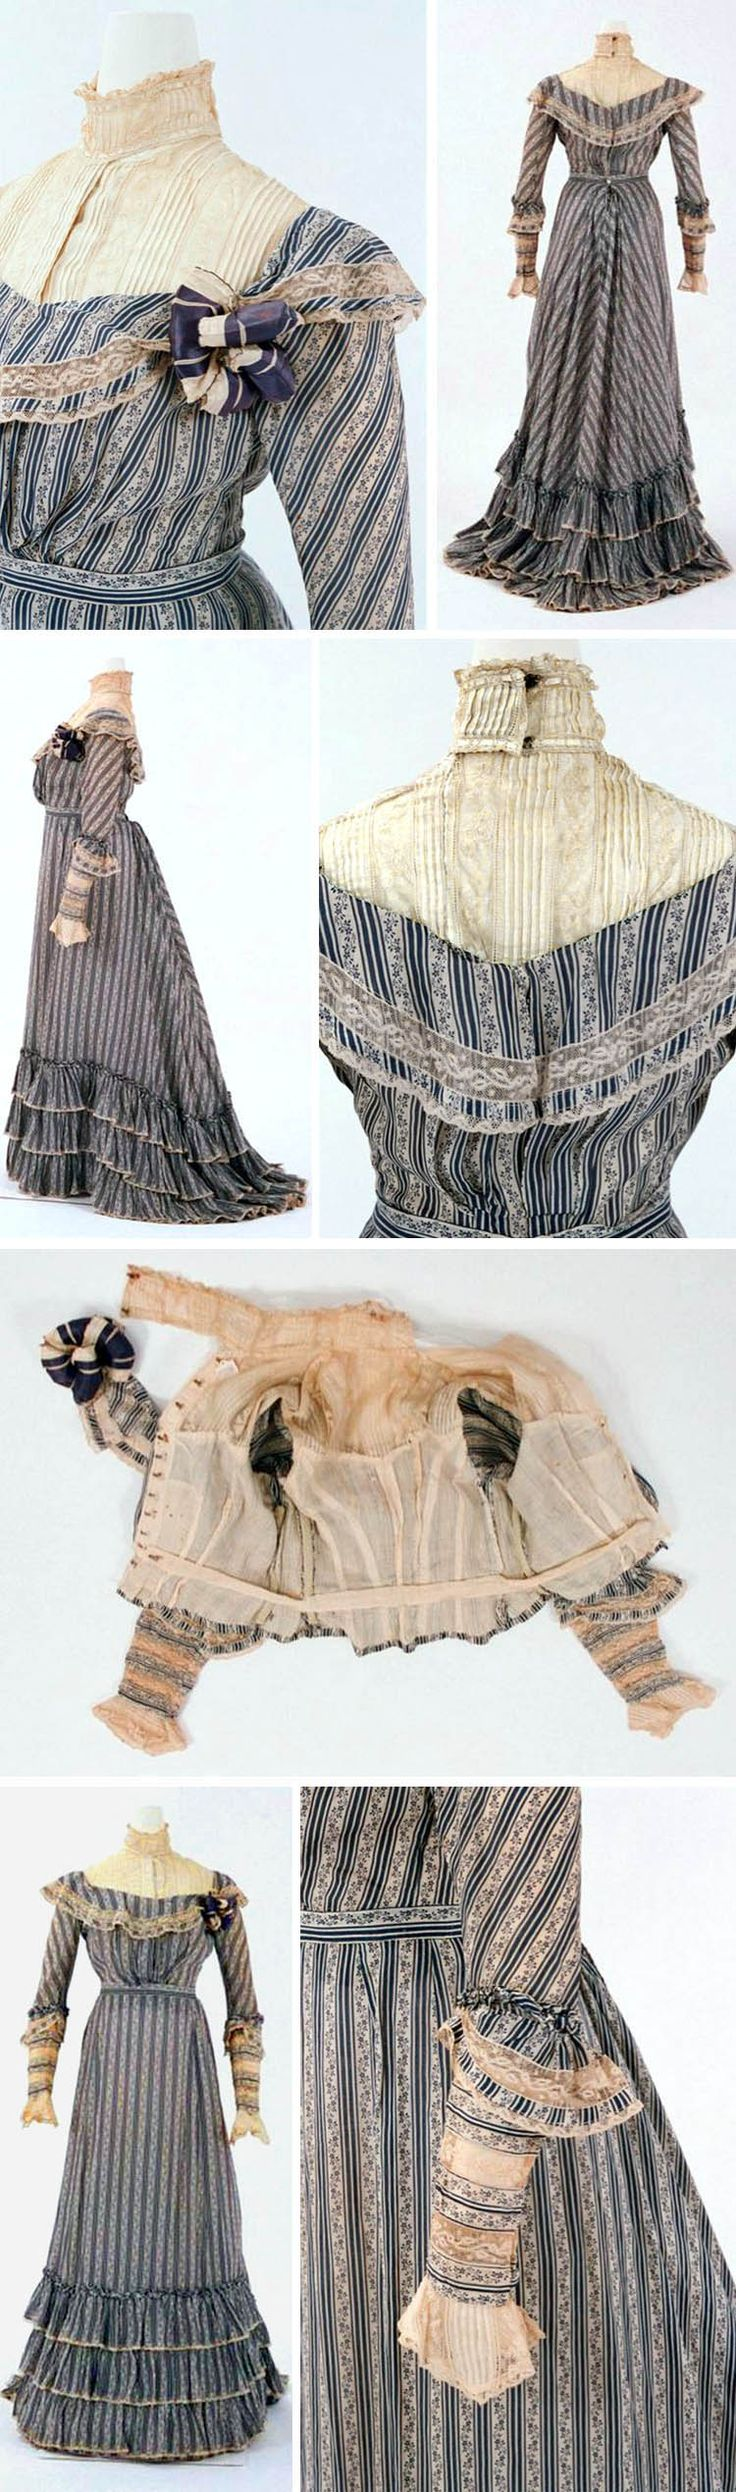 Day dress, American, ca. 1900. Printed cotton trimmed with lace; two pieces. Bunka Costume Museum